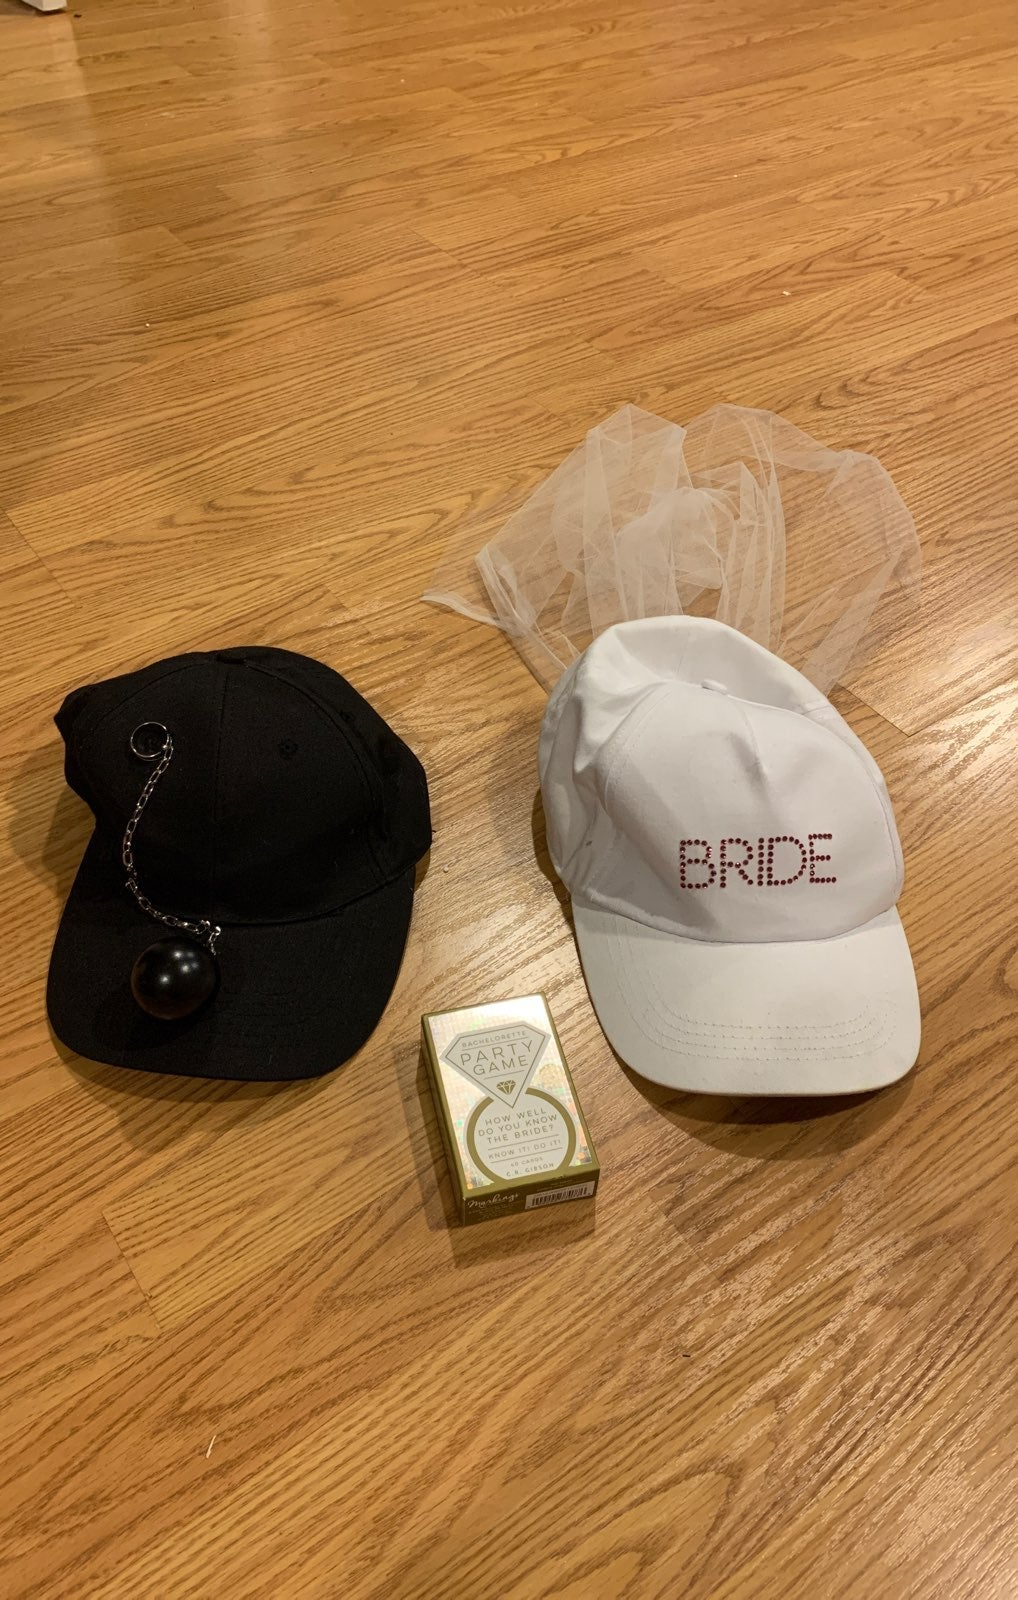 Bride and Groom Hat with Party Game